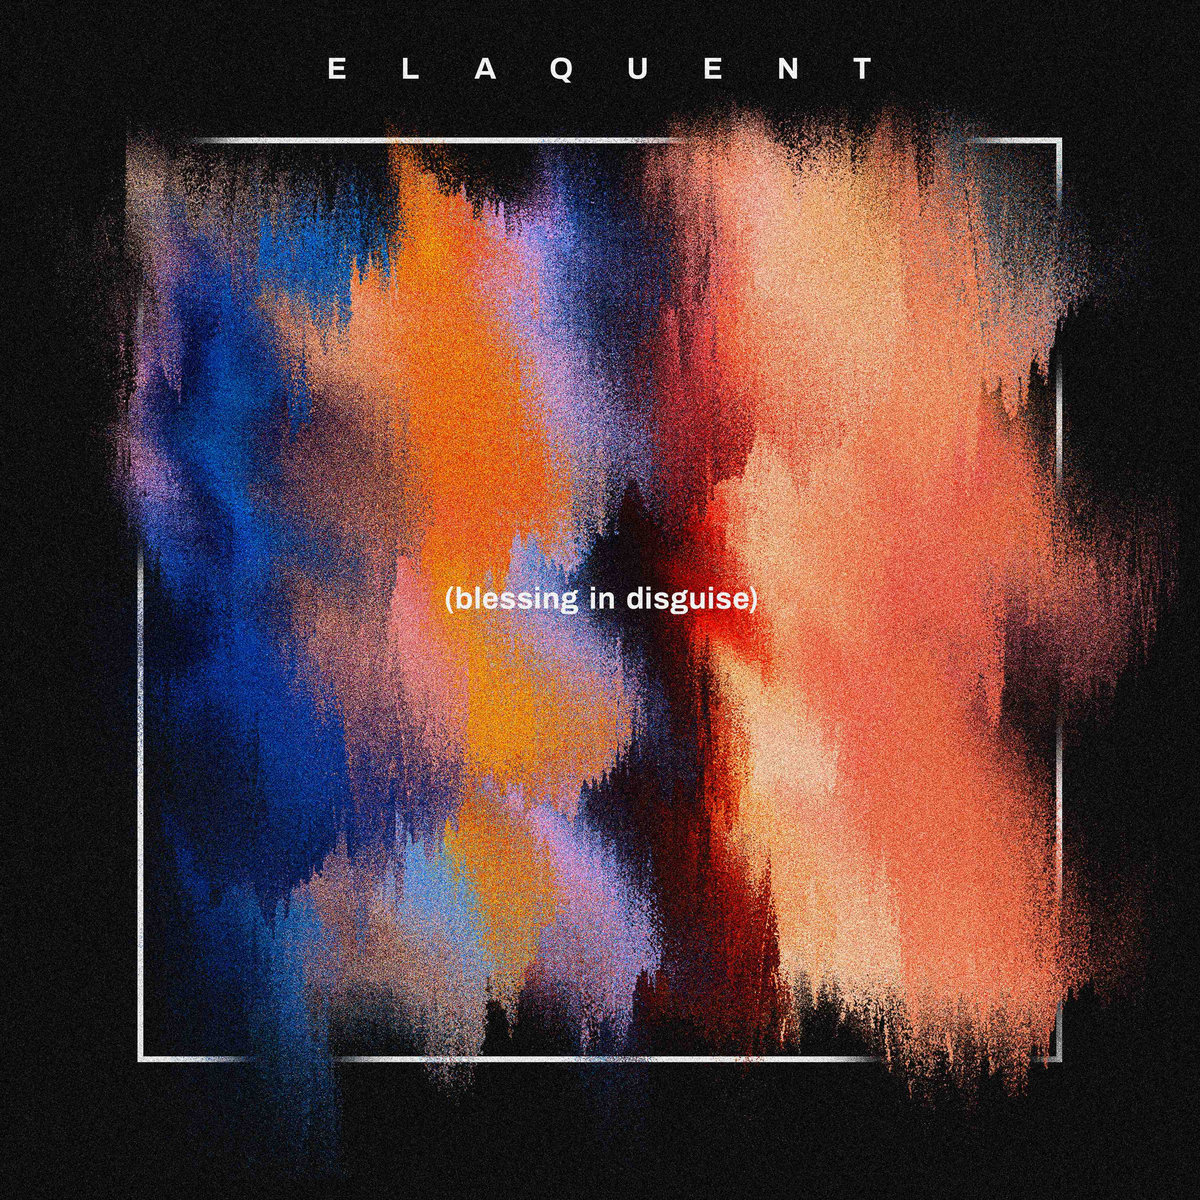 Elaquent - Blessing in Disguise   11. Moment of Weakness (feat.     Seb Zillner) Flute & Co-Production Seb Zillner   © 2019 Mello Music Group  Listen on Spotify